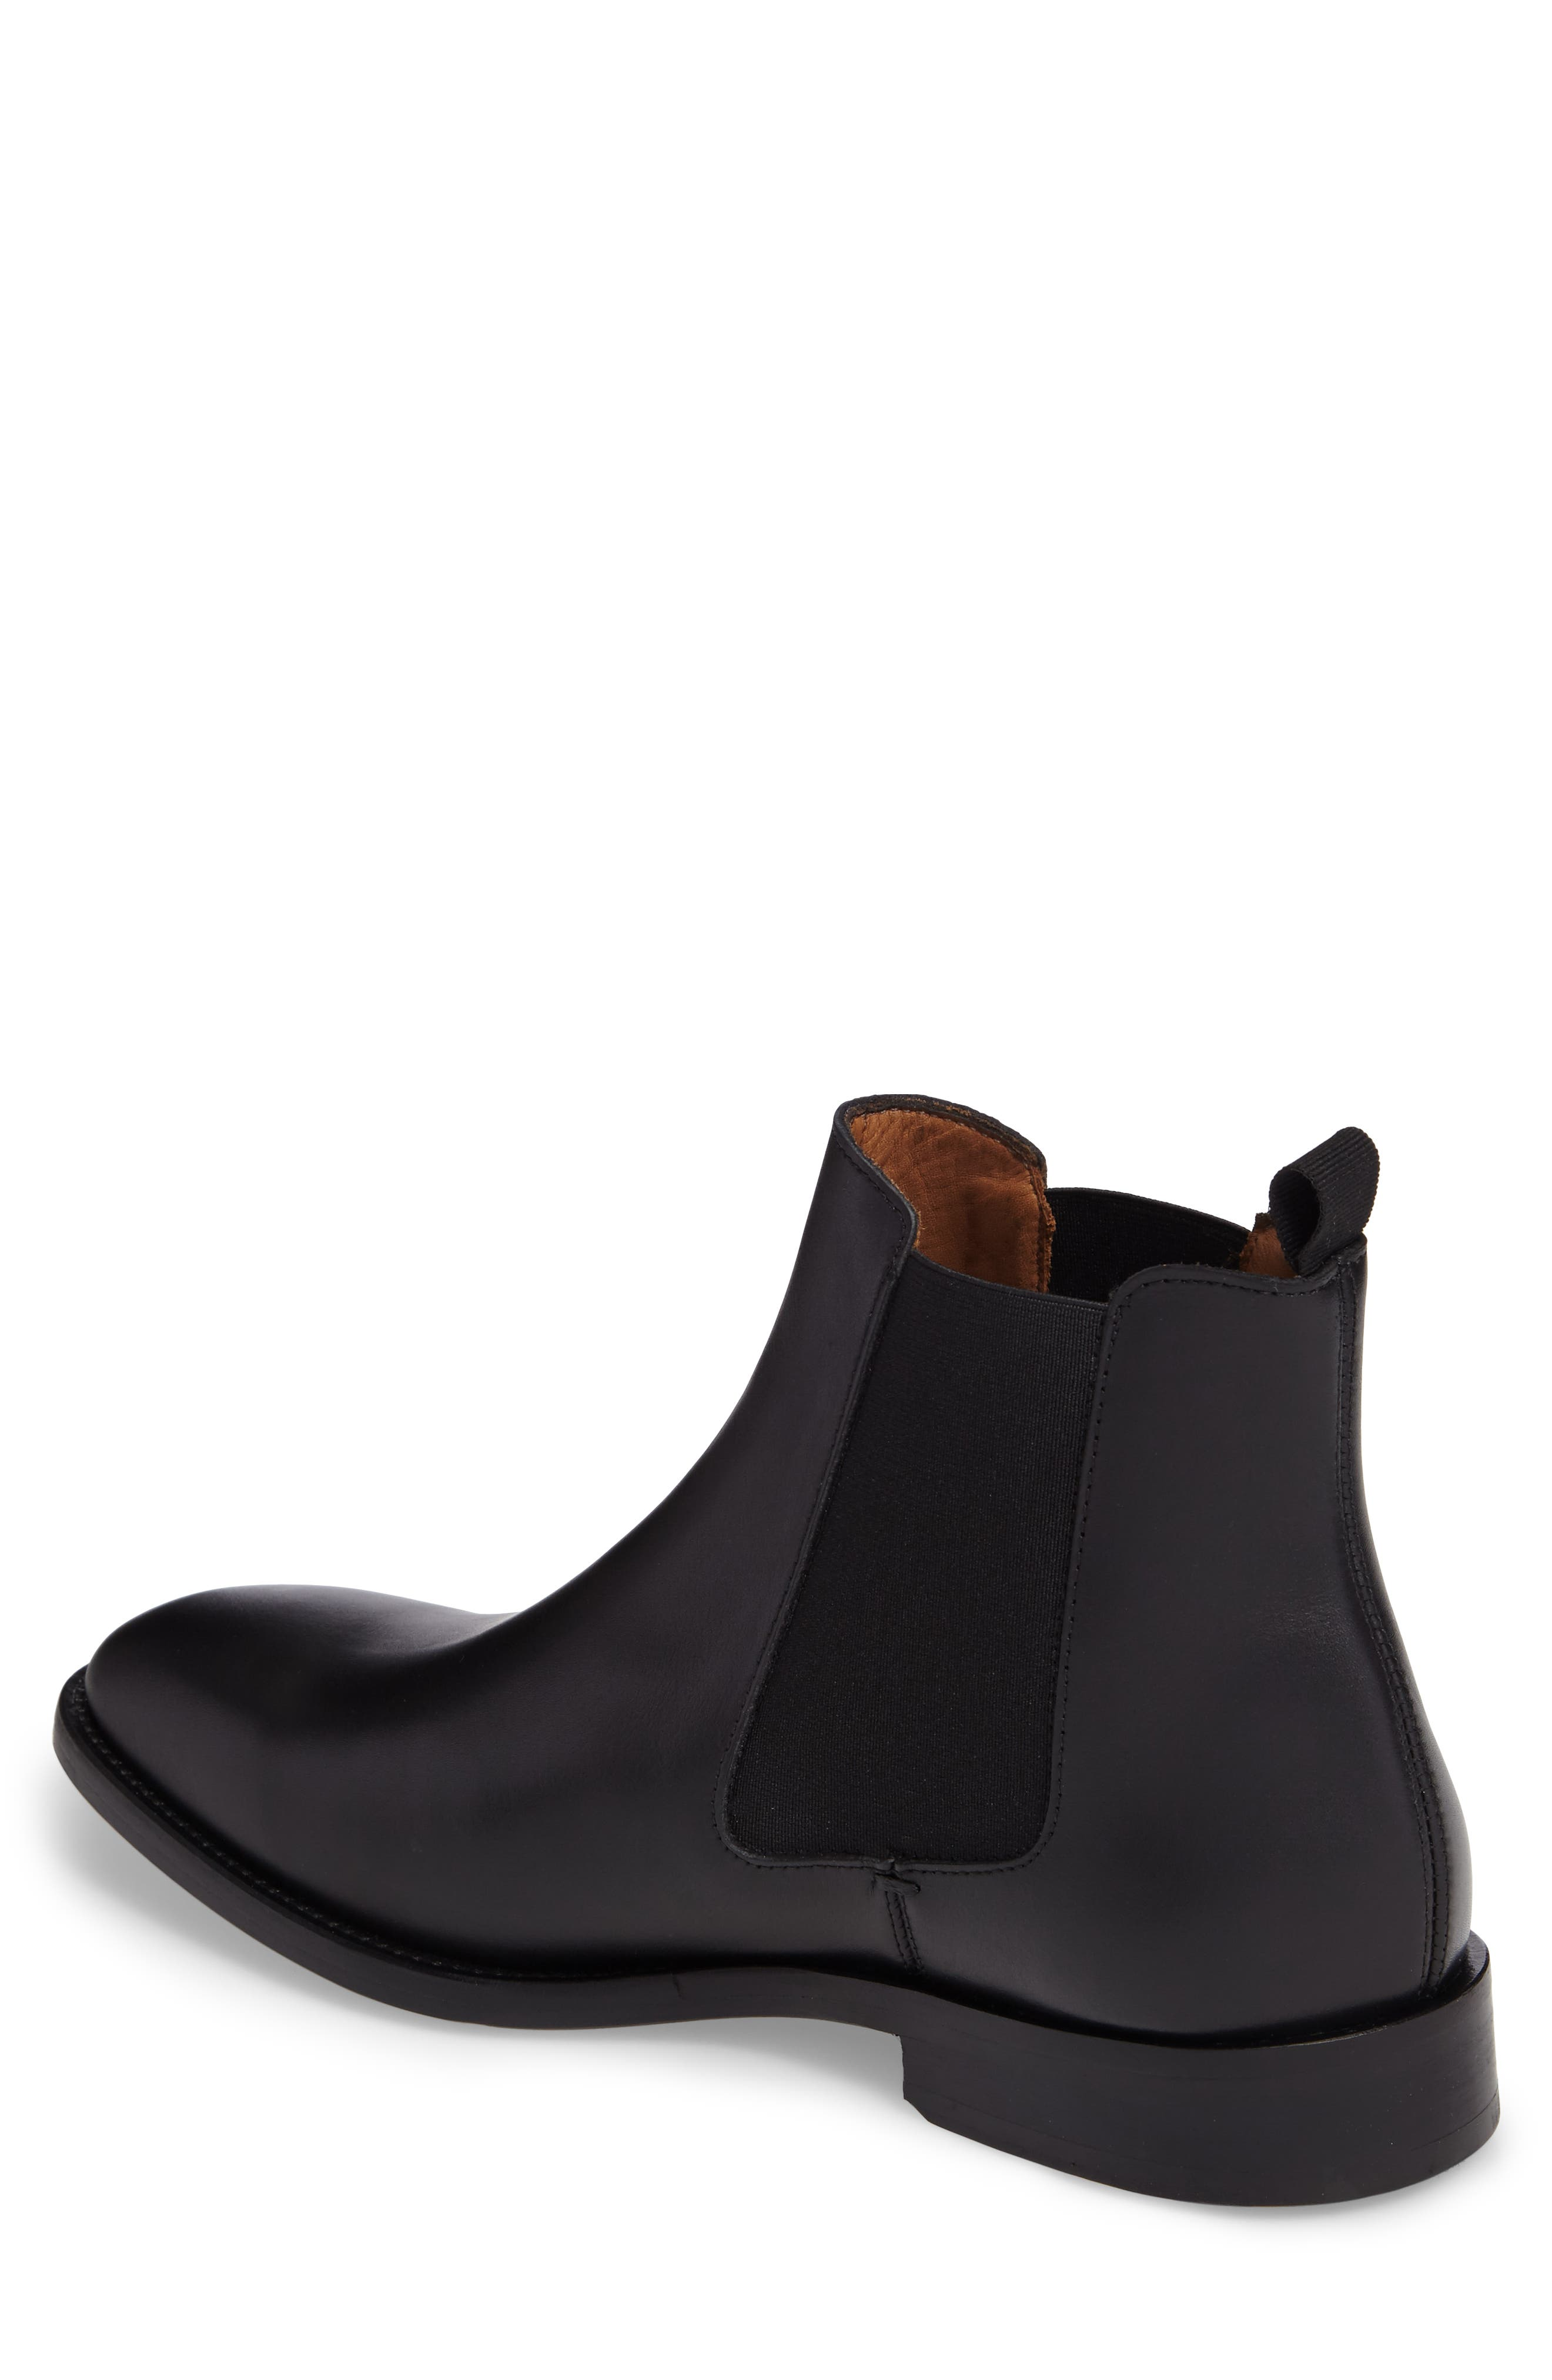 Haldien Chelsea Boot,                             Alternate thumbnail 2, color,                             001